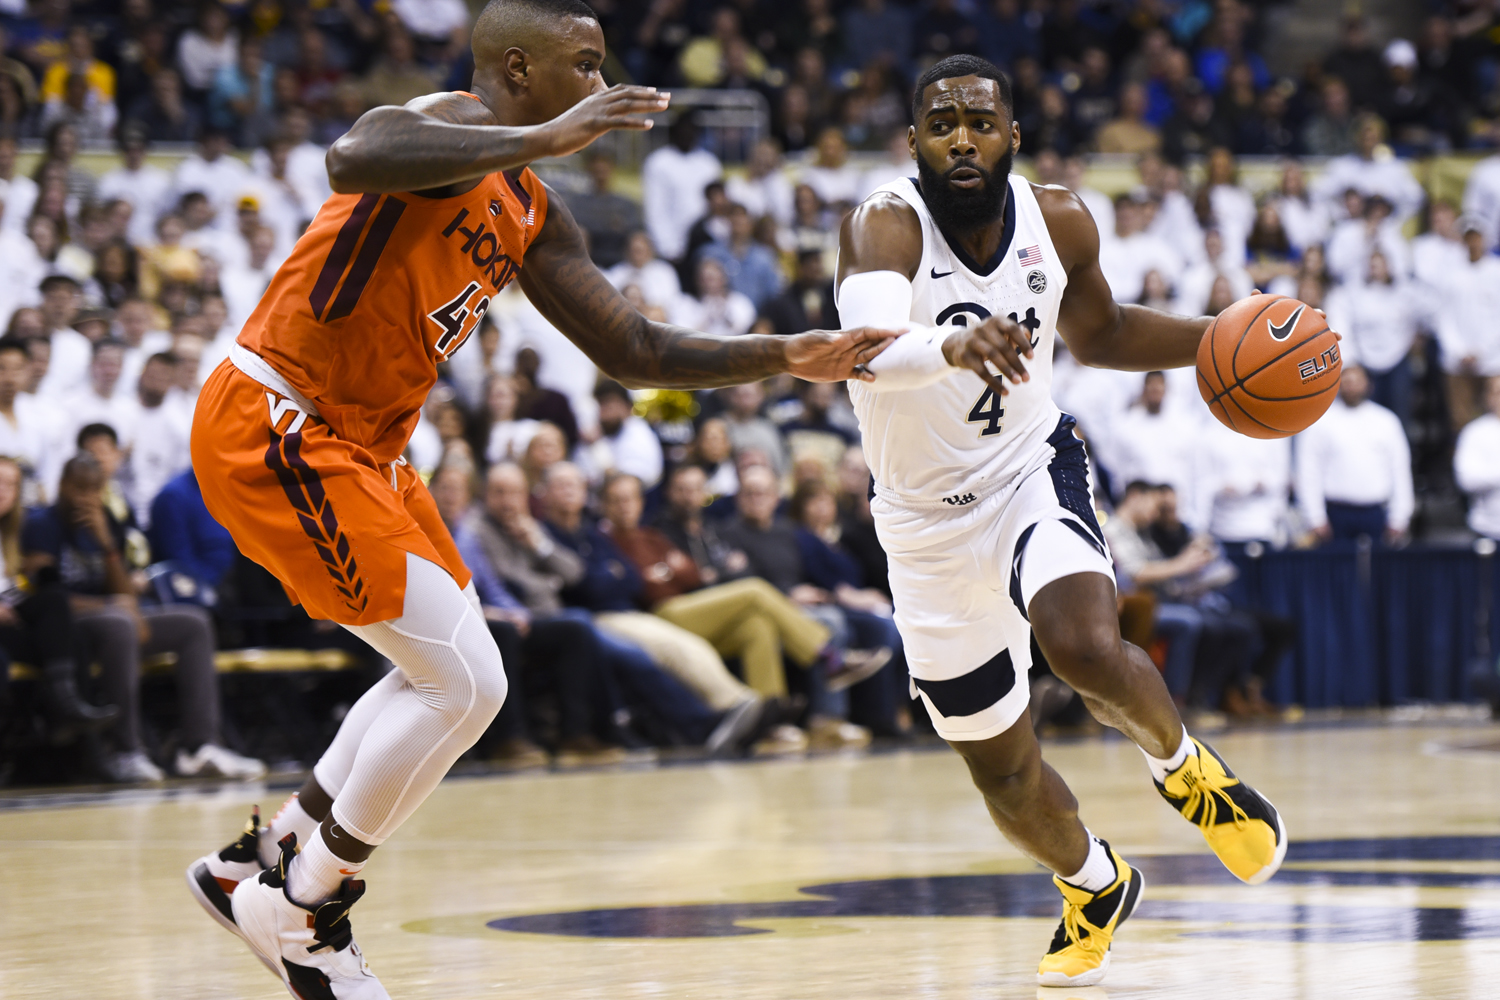 Senior guard and forward Jared Wilson-Frame (4), pictured here against Virginia Tech on Feb. 16, led all Pitt scorers with 19 points.